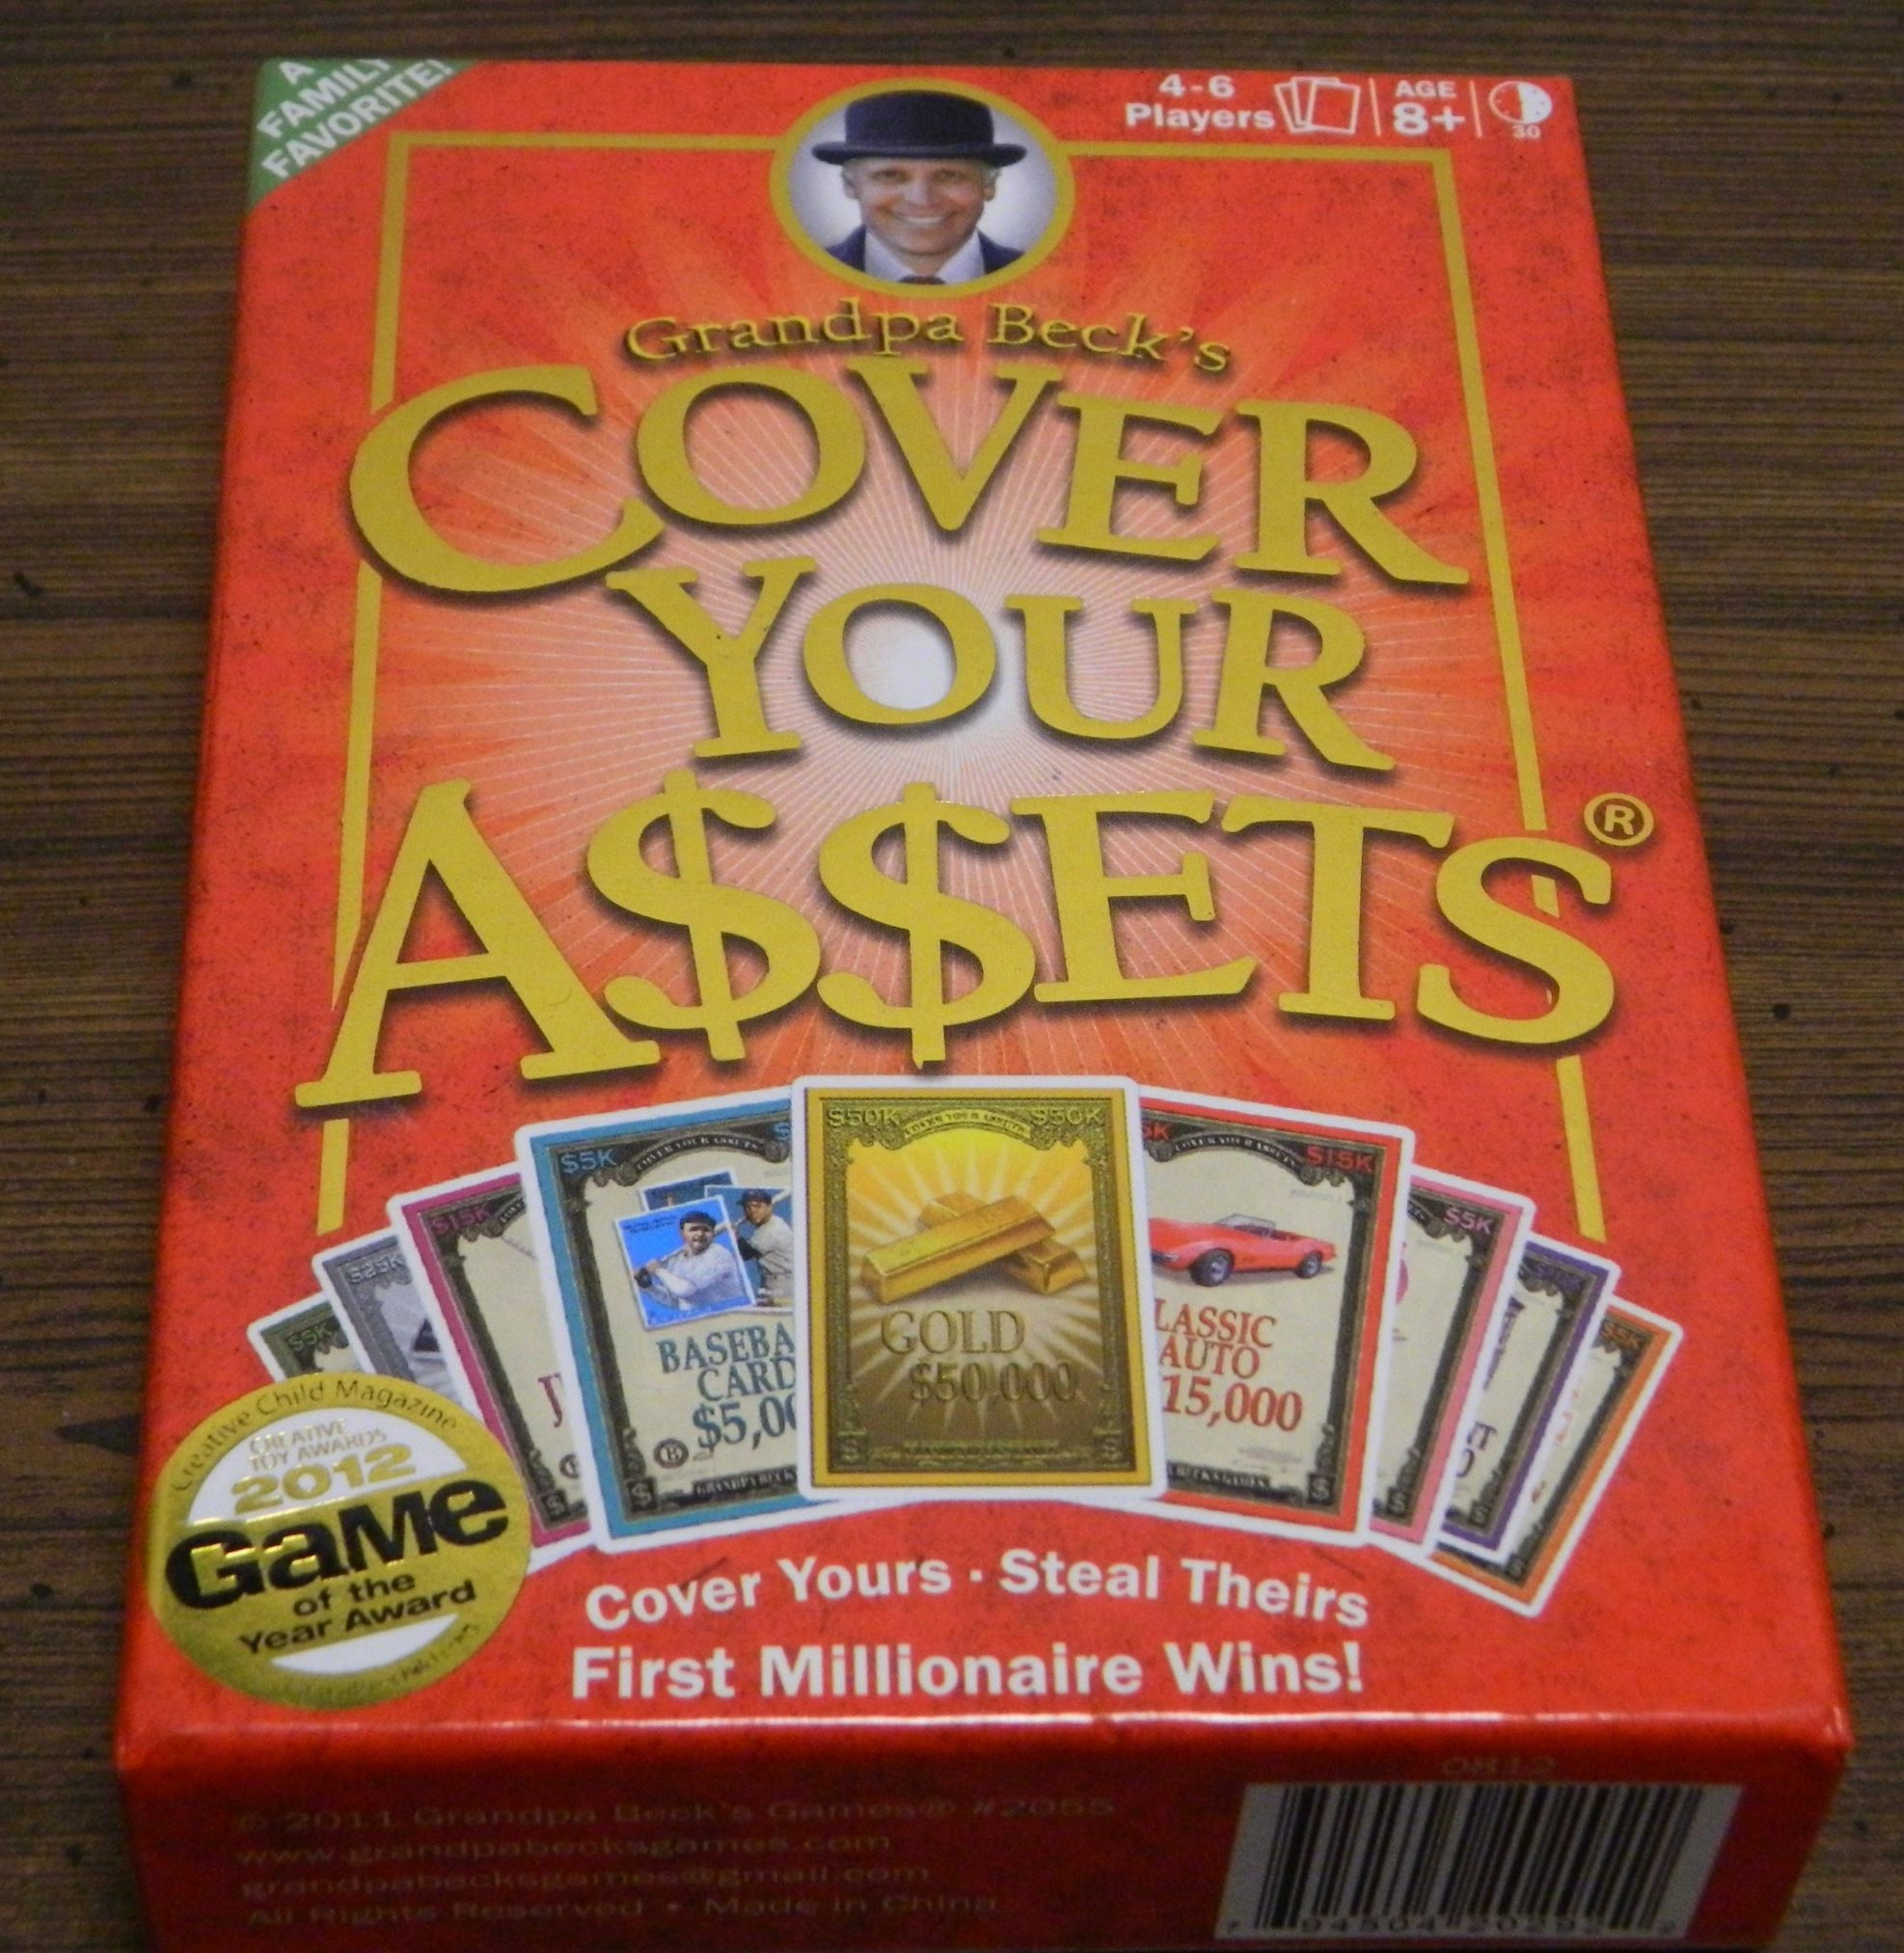 Box for Cover Your Assets